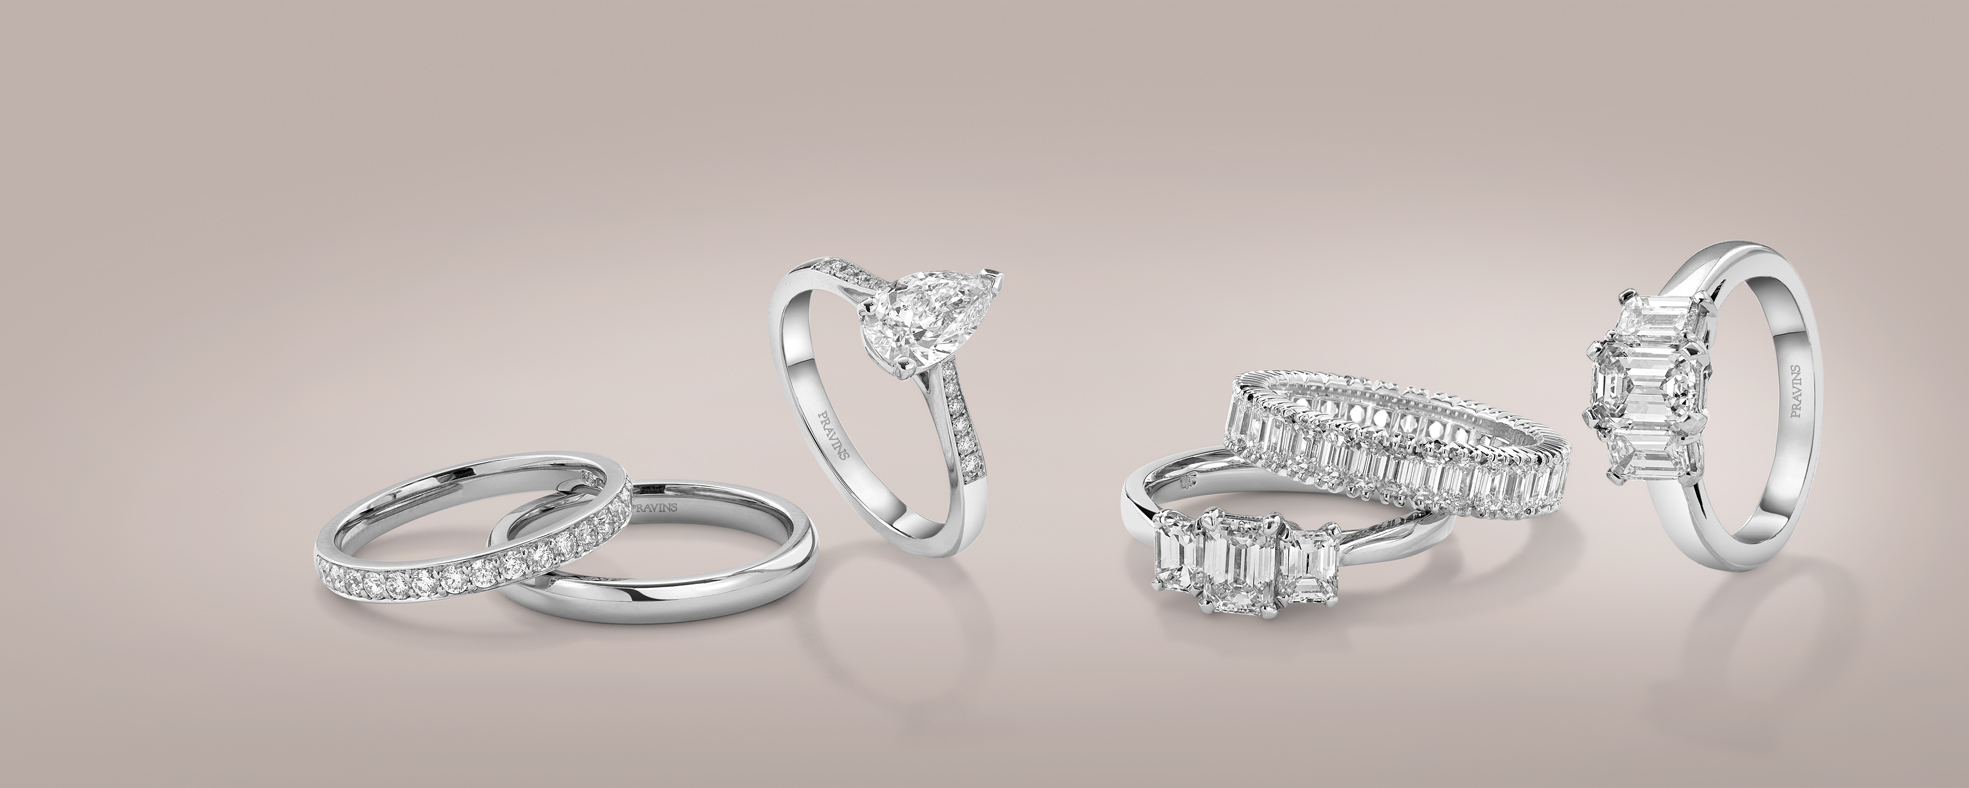 ENGAGEMENT RINGS FROM PRAVINS, DIAMOND EXPERTS SINCE 1969.